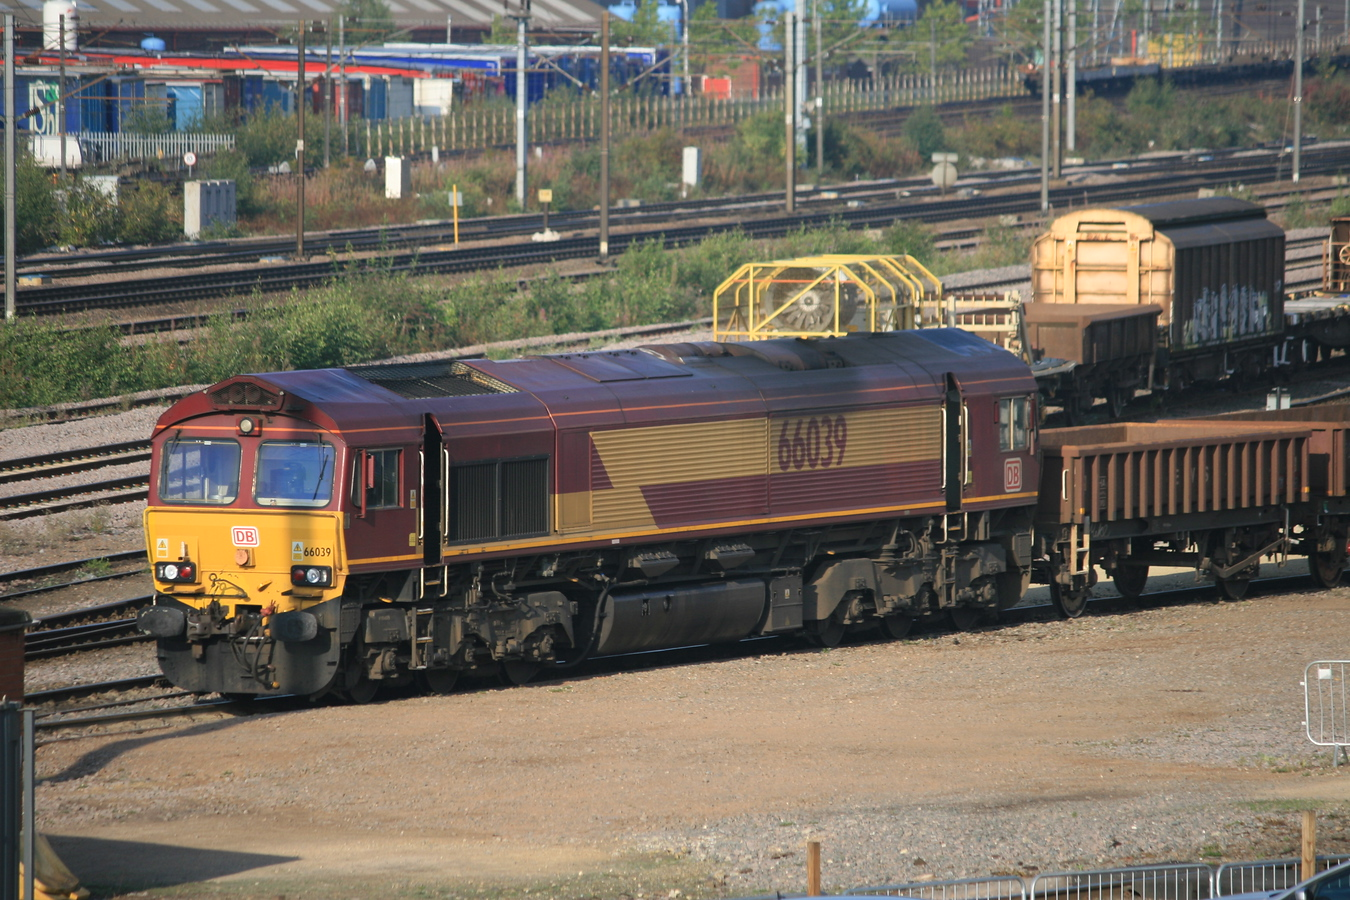 66039_Doncaster_20092015 (4)_DBS